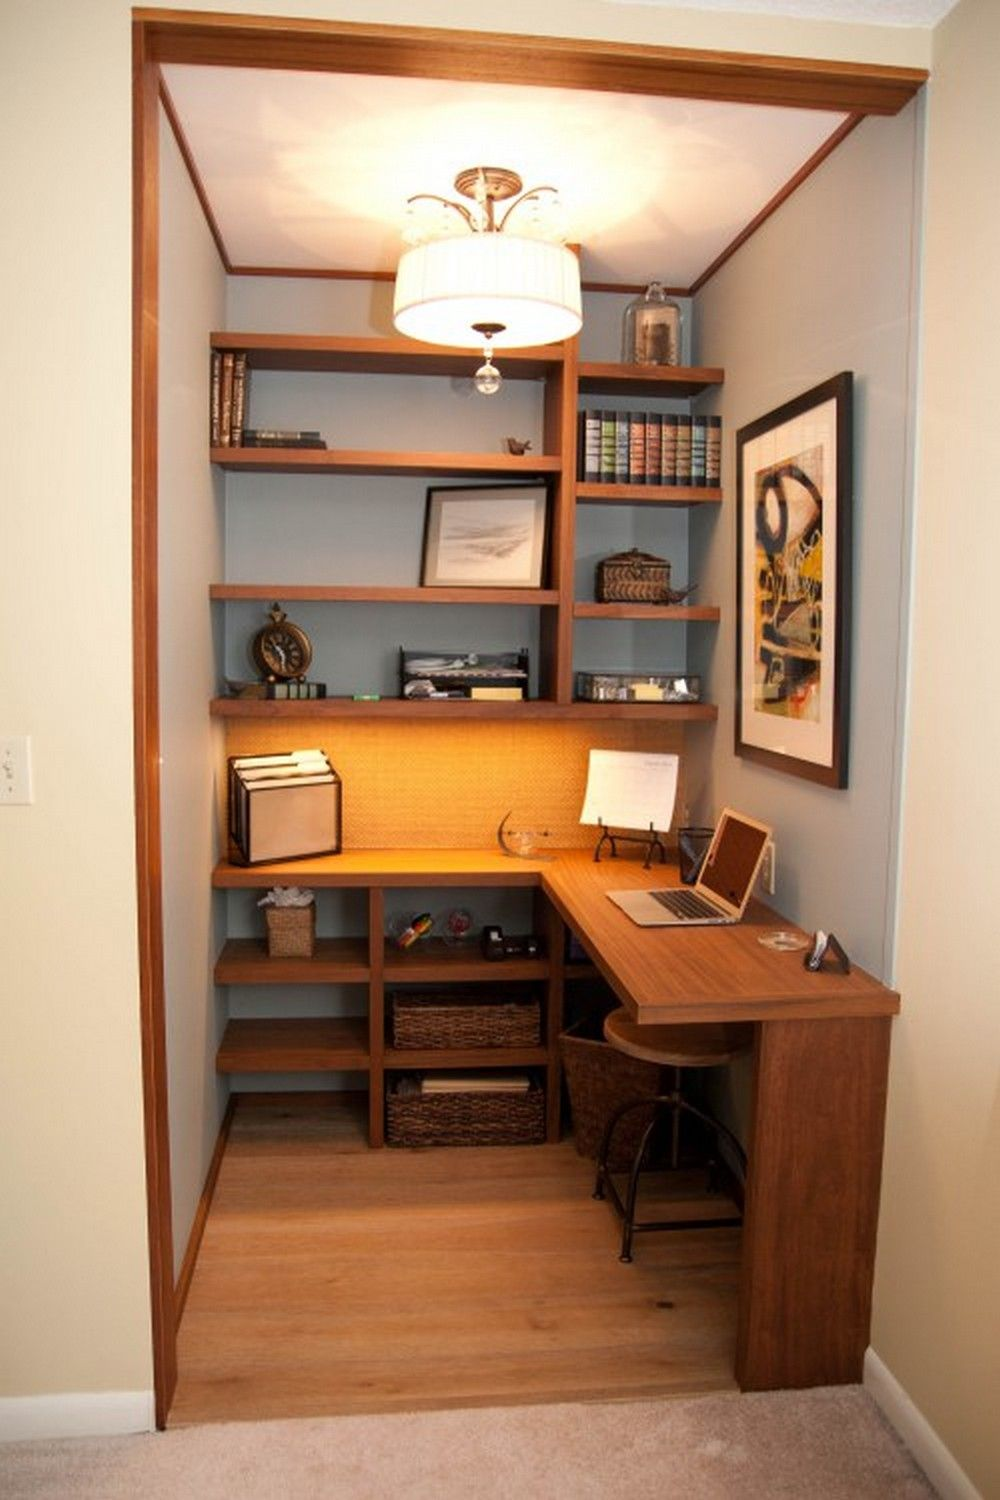 Nice 25 small space ideas for the bedroom and home office https homedecort